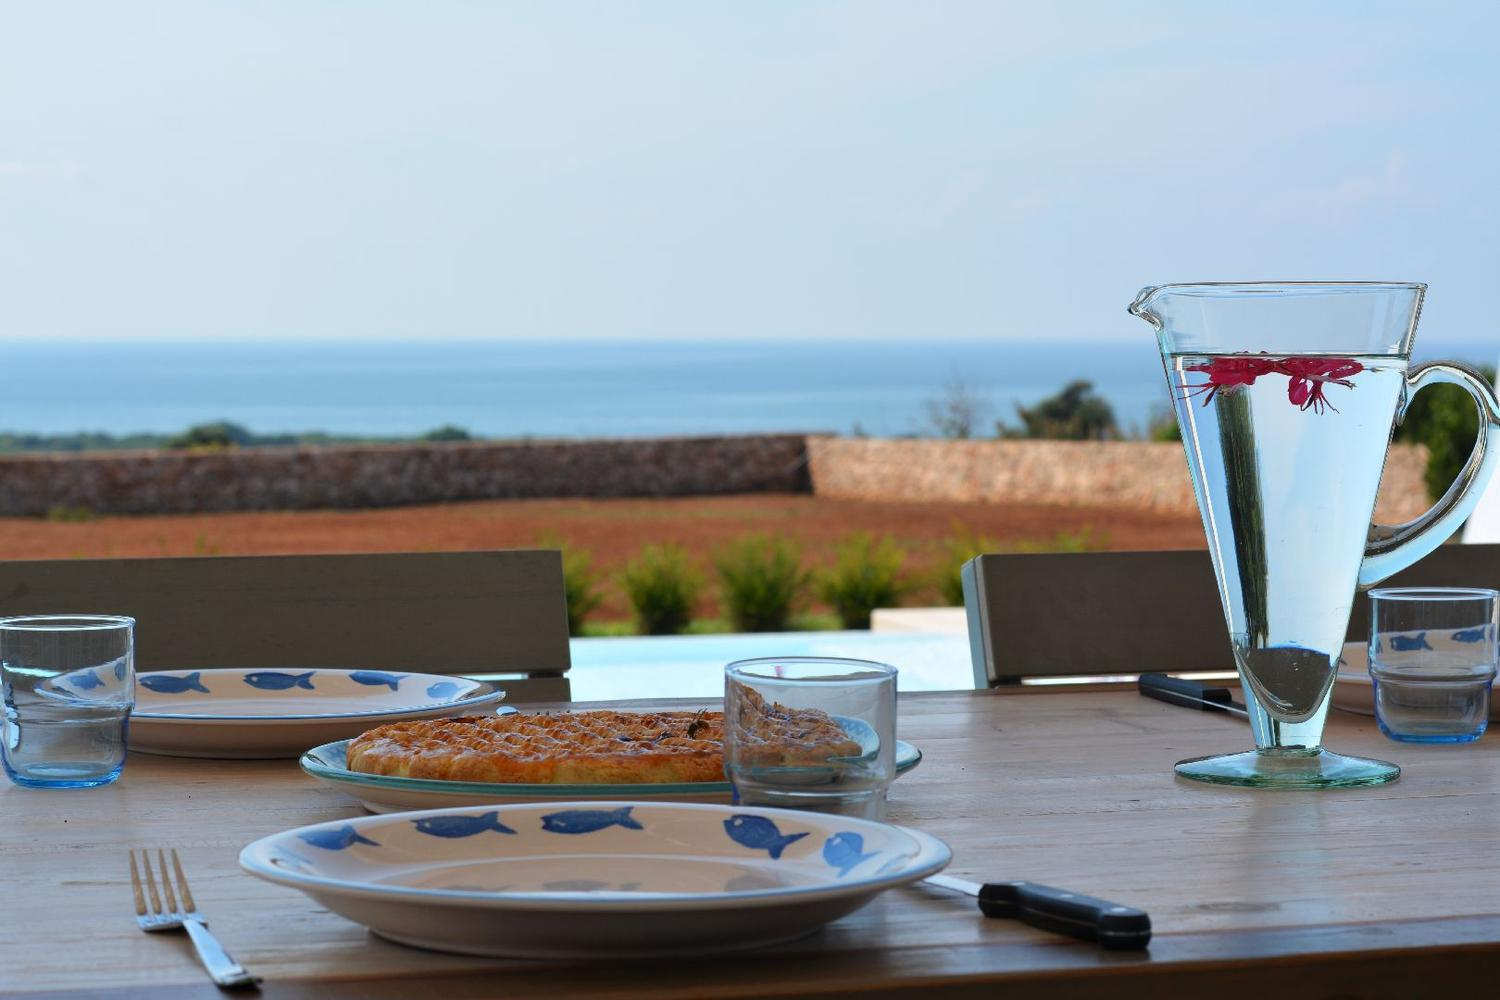 Furnished and equipped Patio with Sea View detail